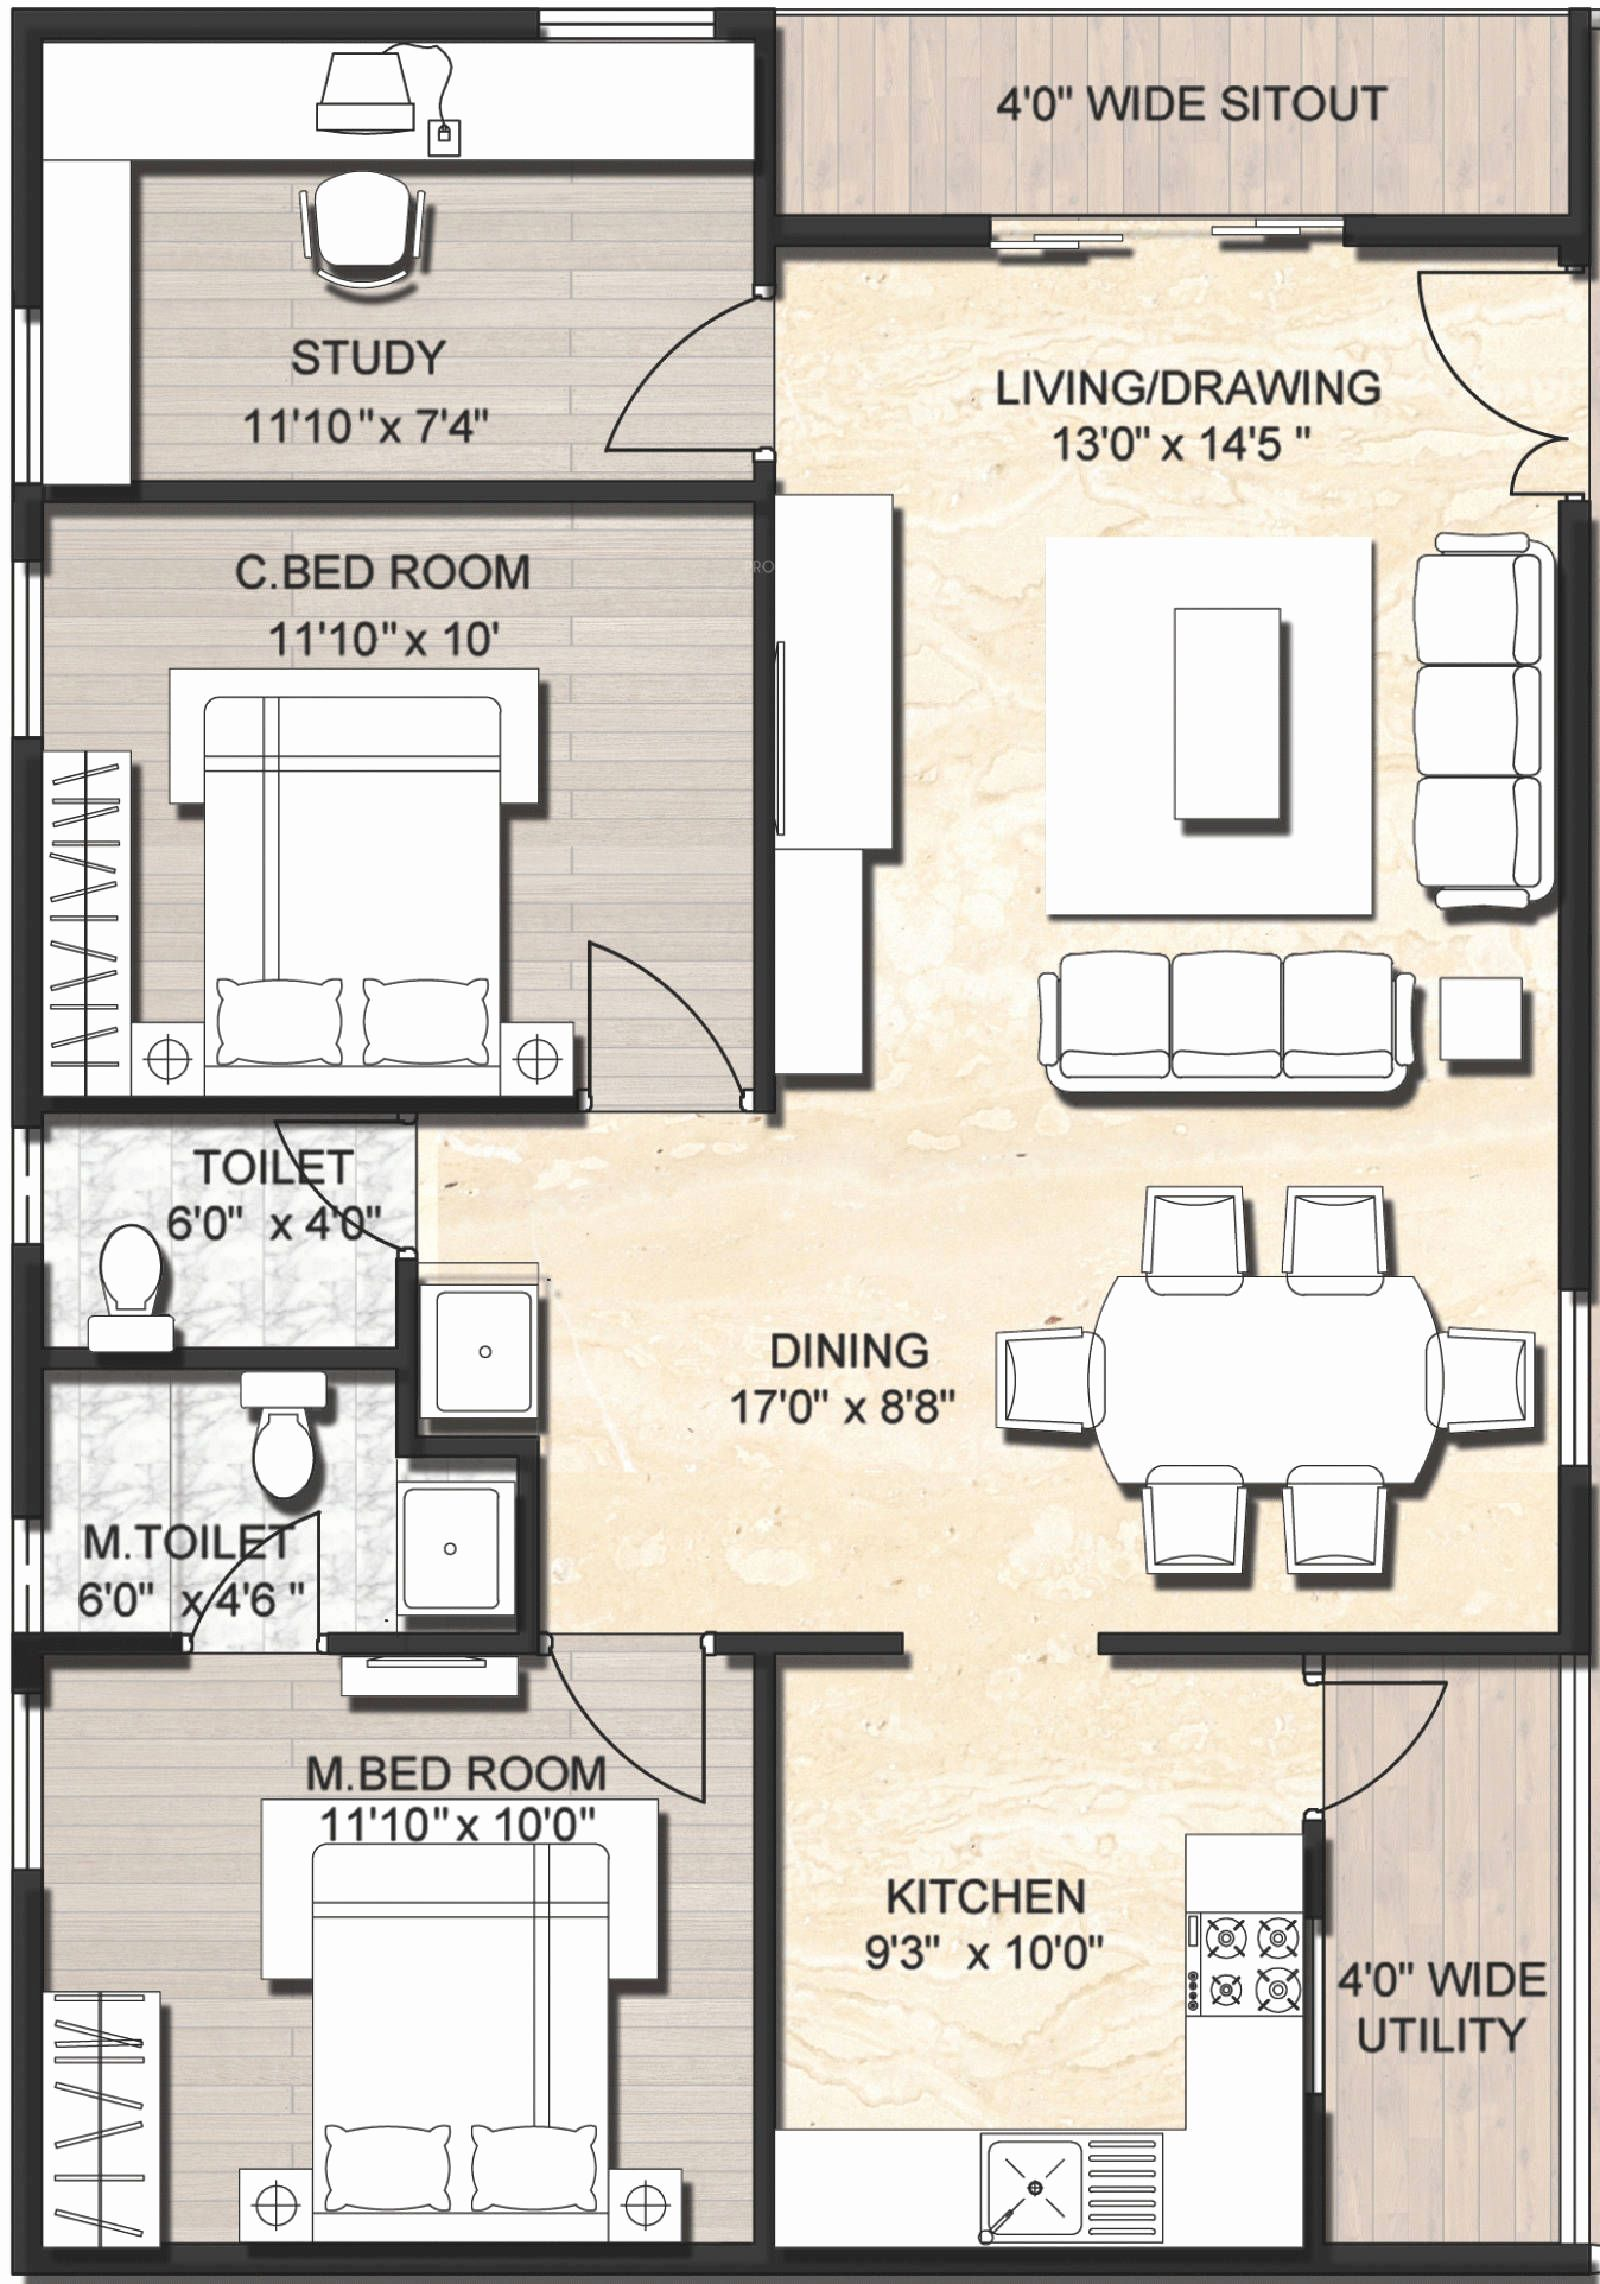 900 Sq Feet House Plans Best Of 56 Sq Ft India Floor Plan Home Plan And Elevation 1950 Sq Model House Plan Indian House Plans 1200sq Ft House Plans